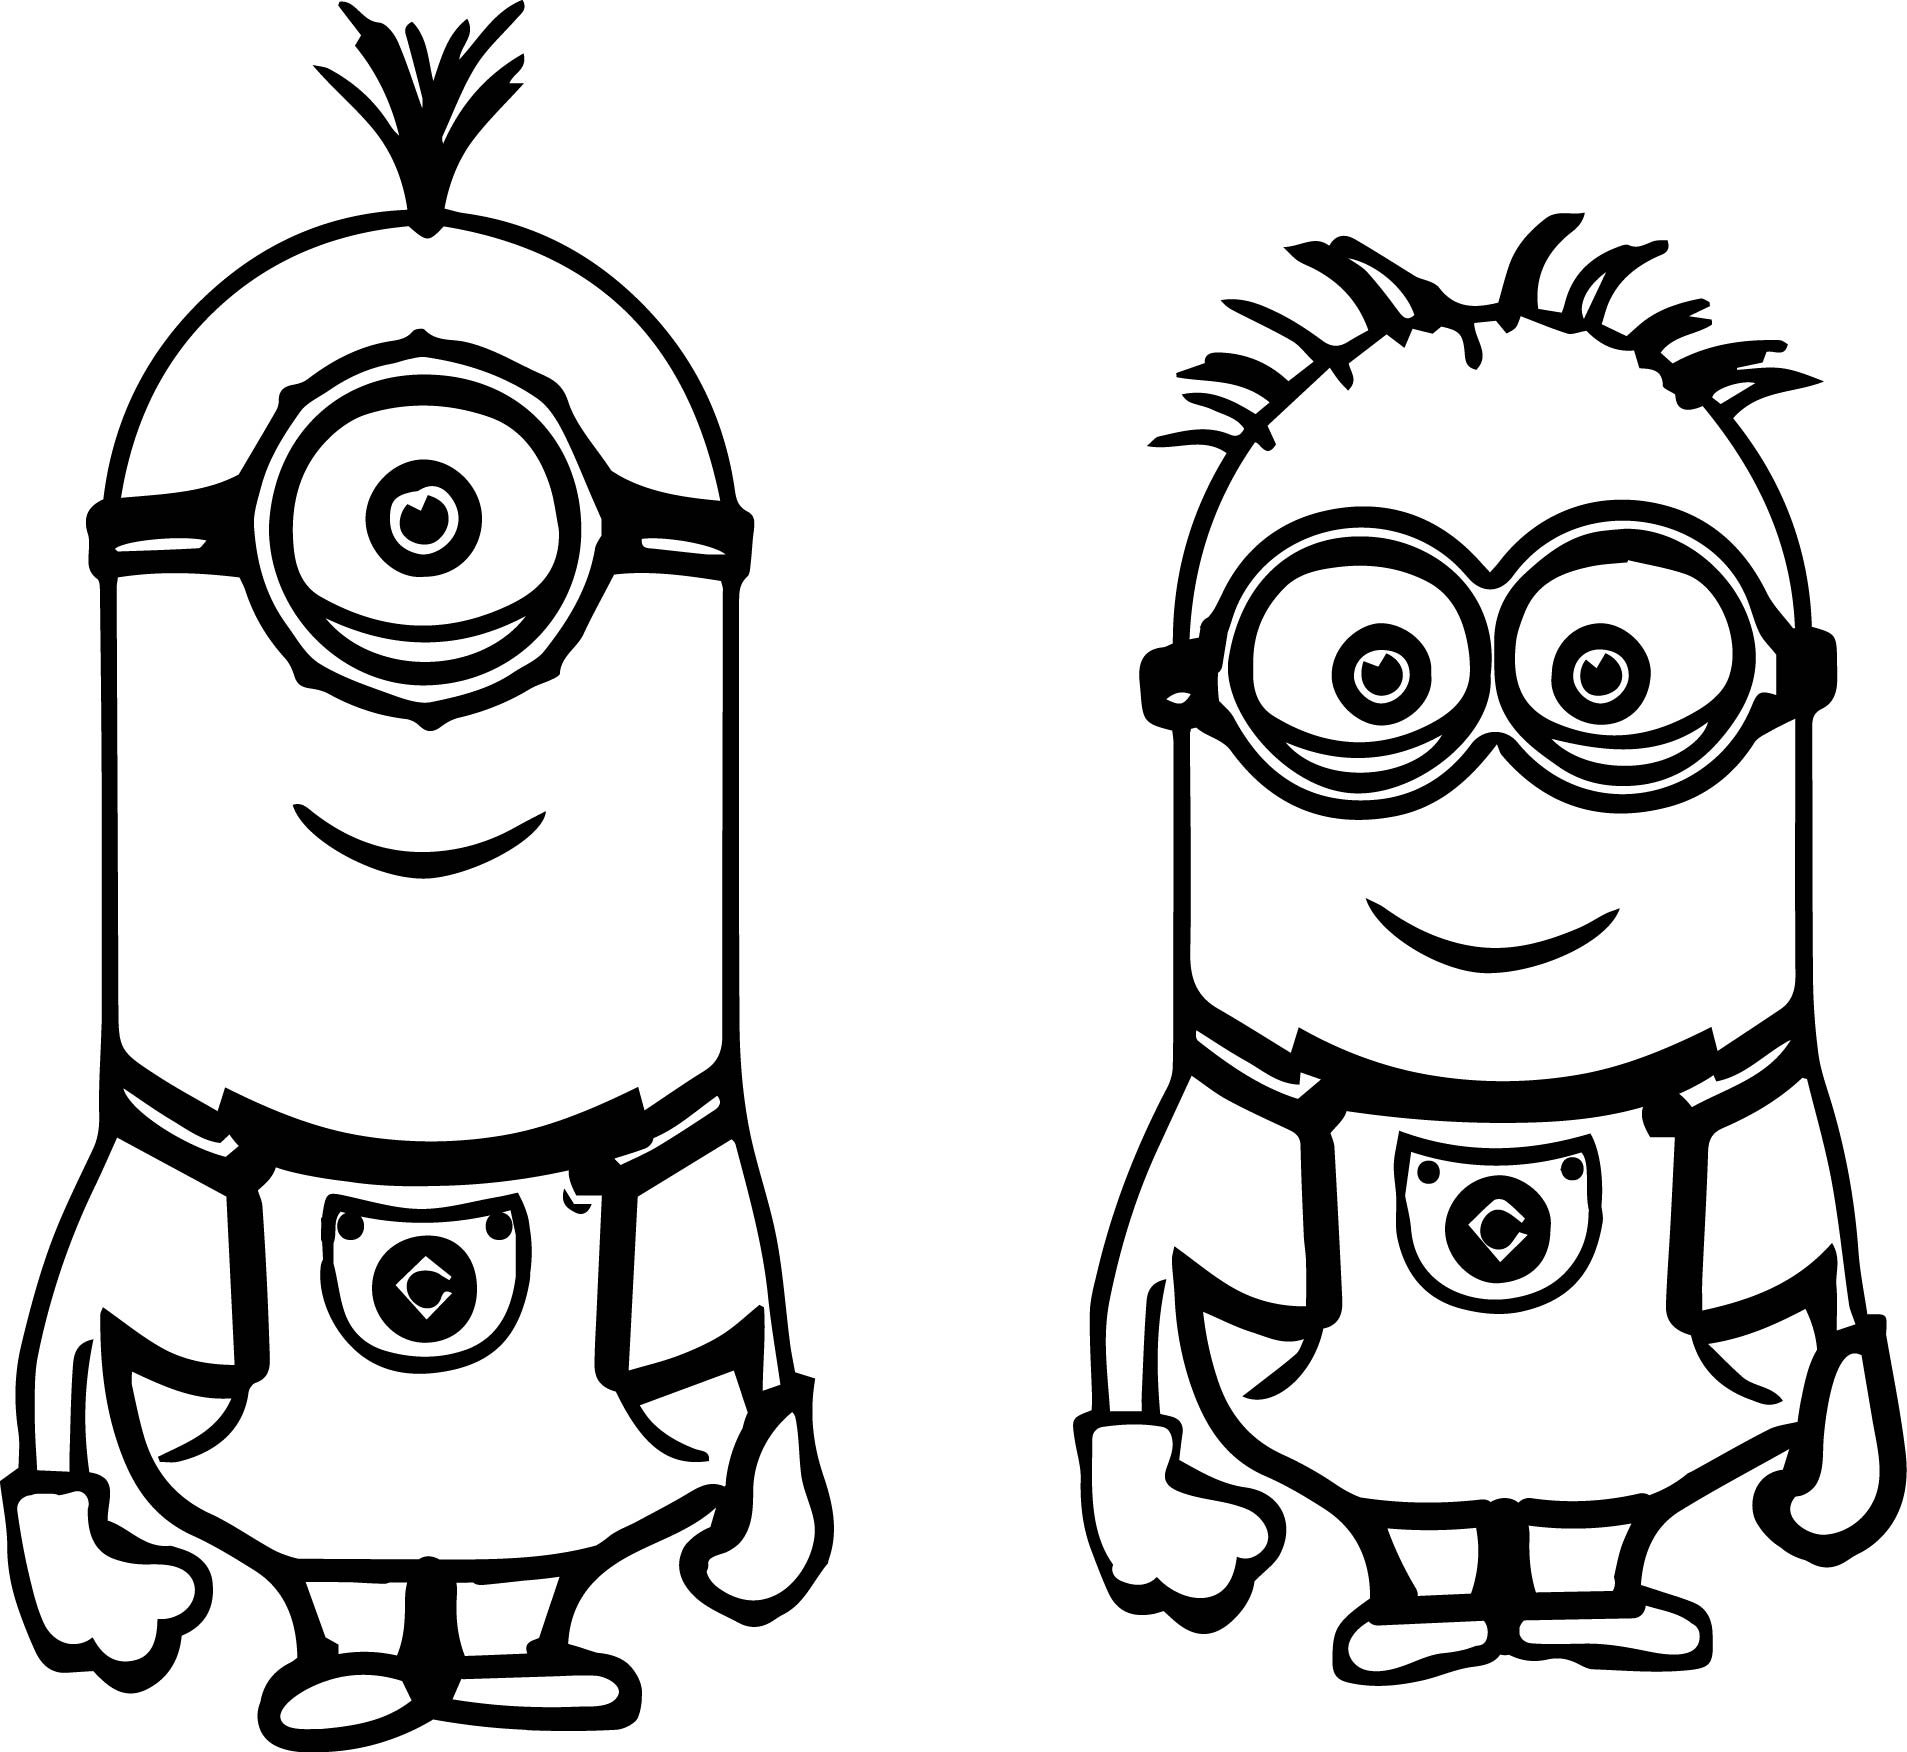 Uncategorized Despicable Me Minion Coloring Pages kevin bob despicable me 2 minions coloring page wecoloringpage page